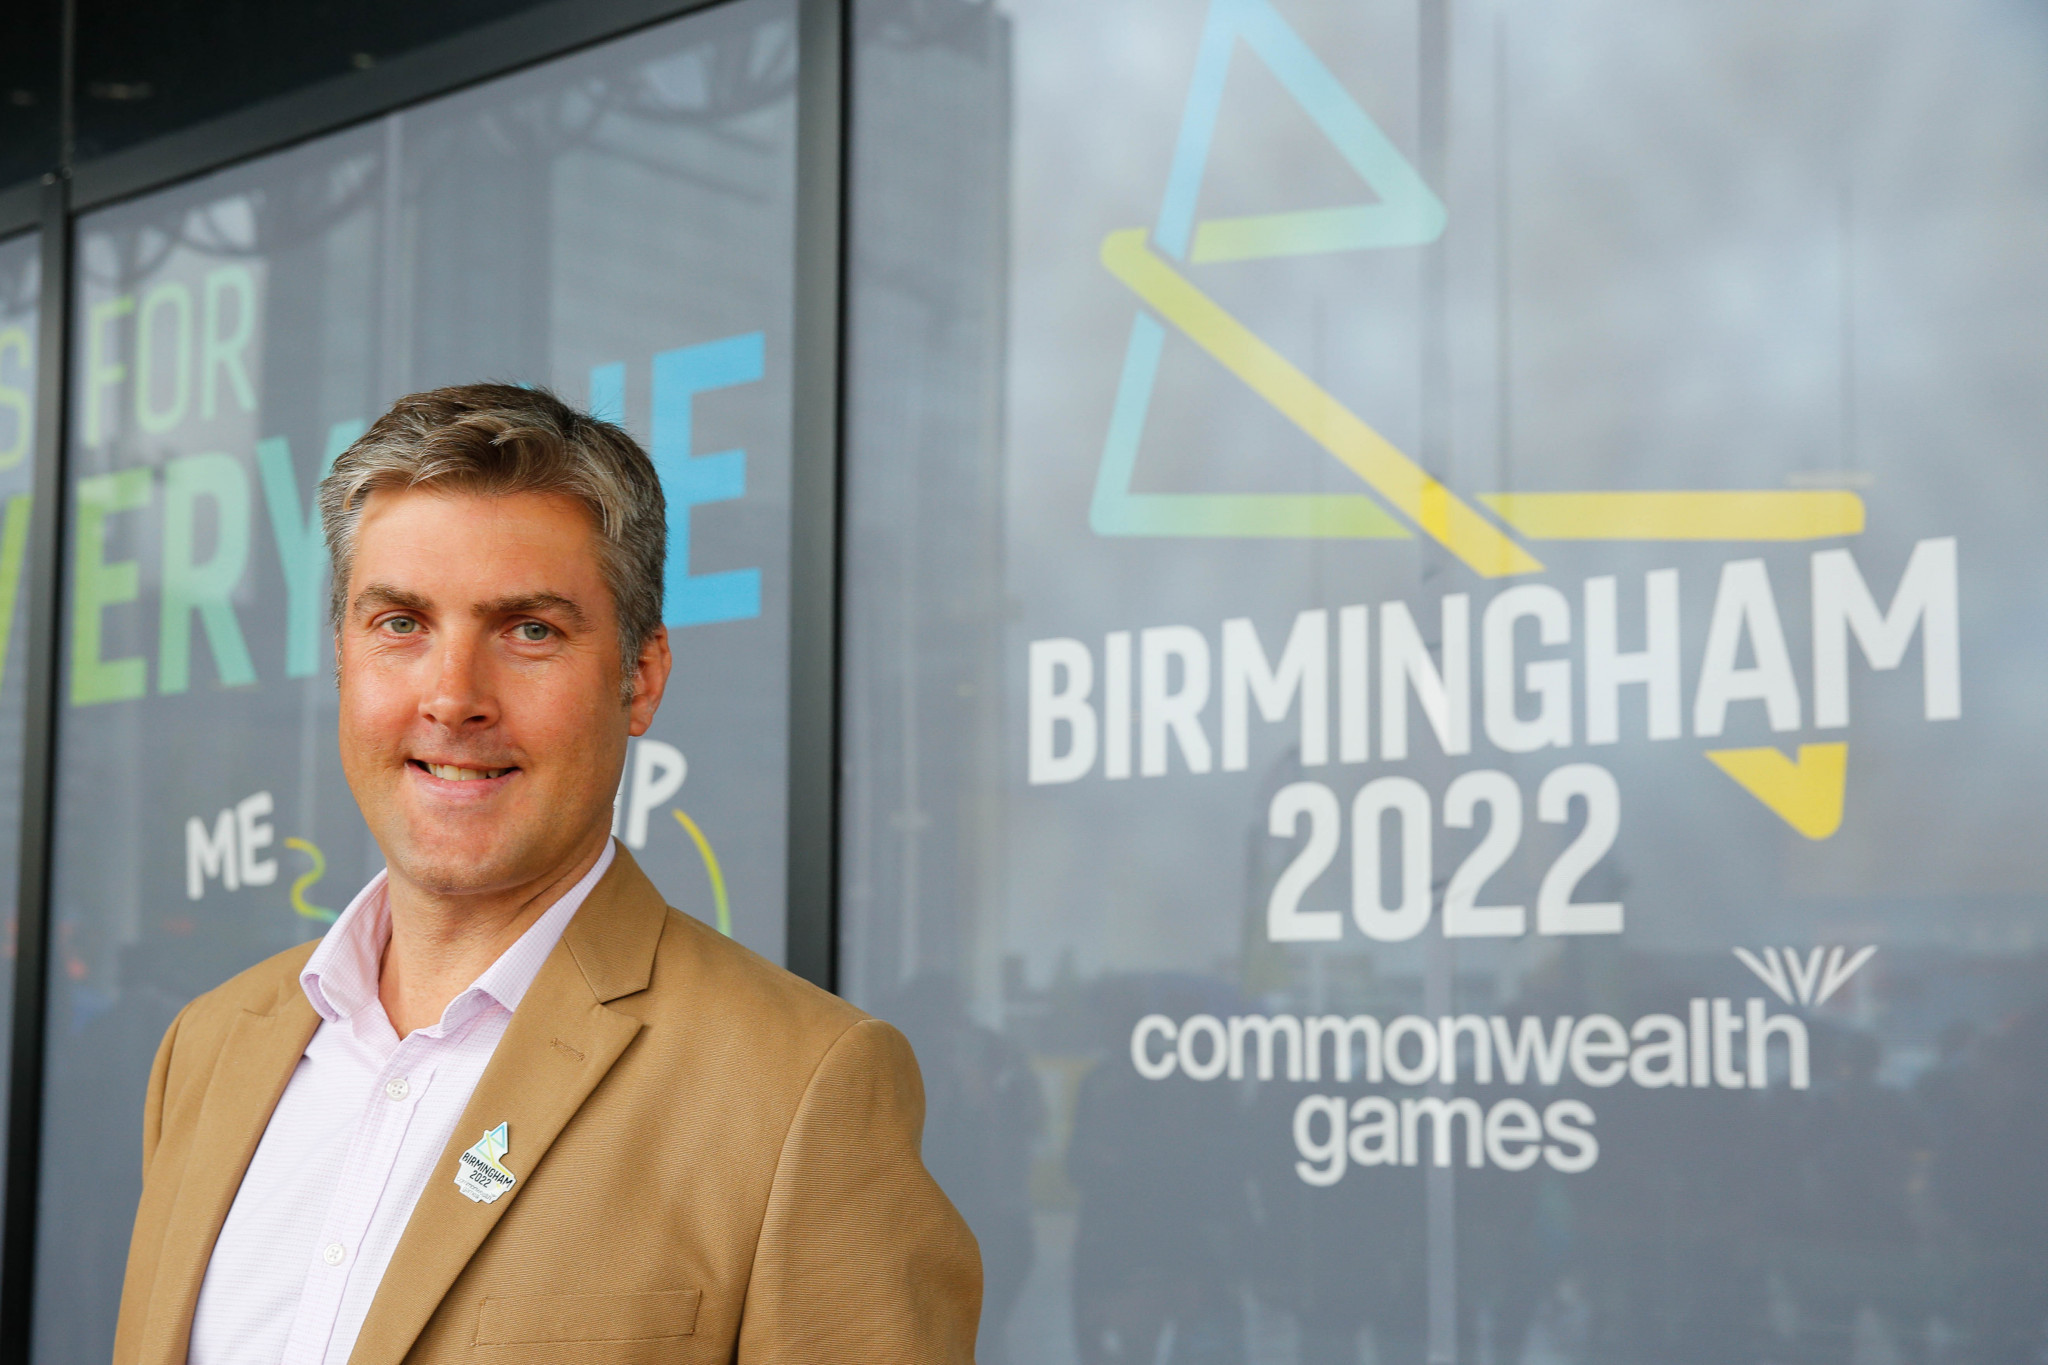 Birmingham 2022 chief executive Ian Reid claimed Solihull could become a